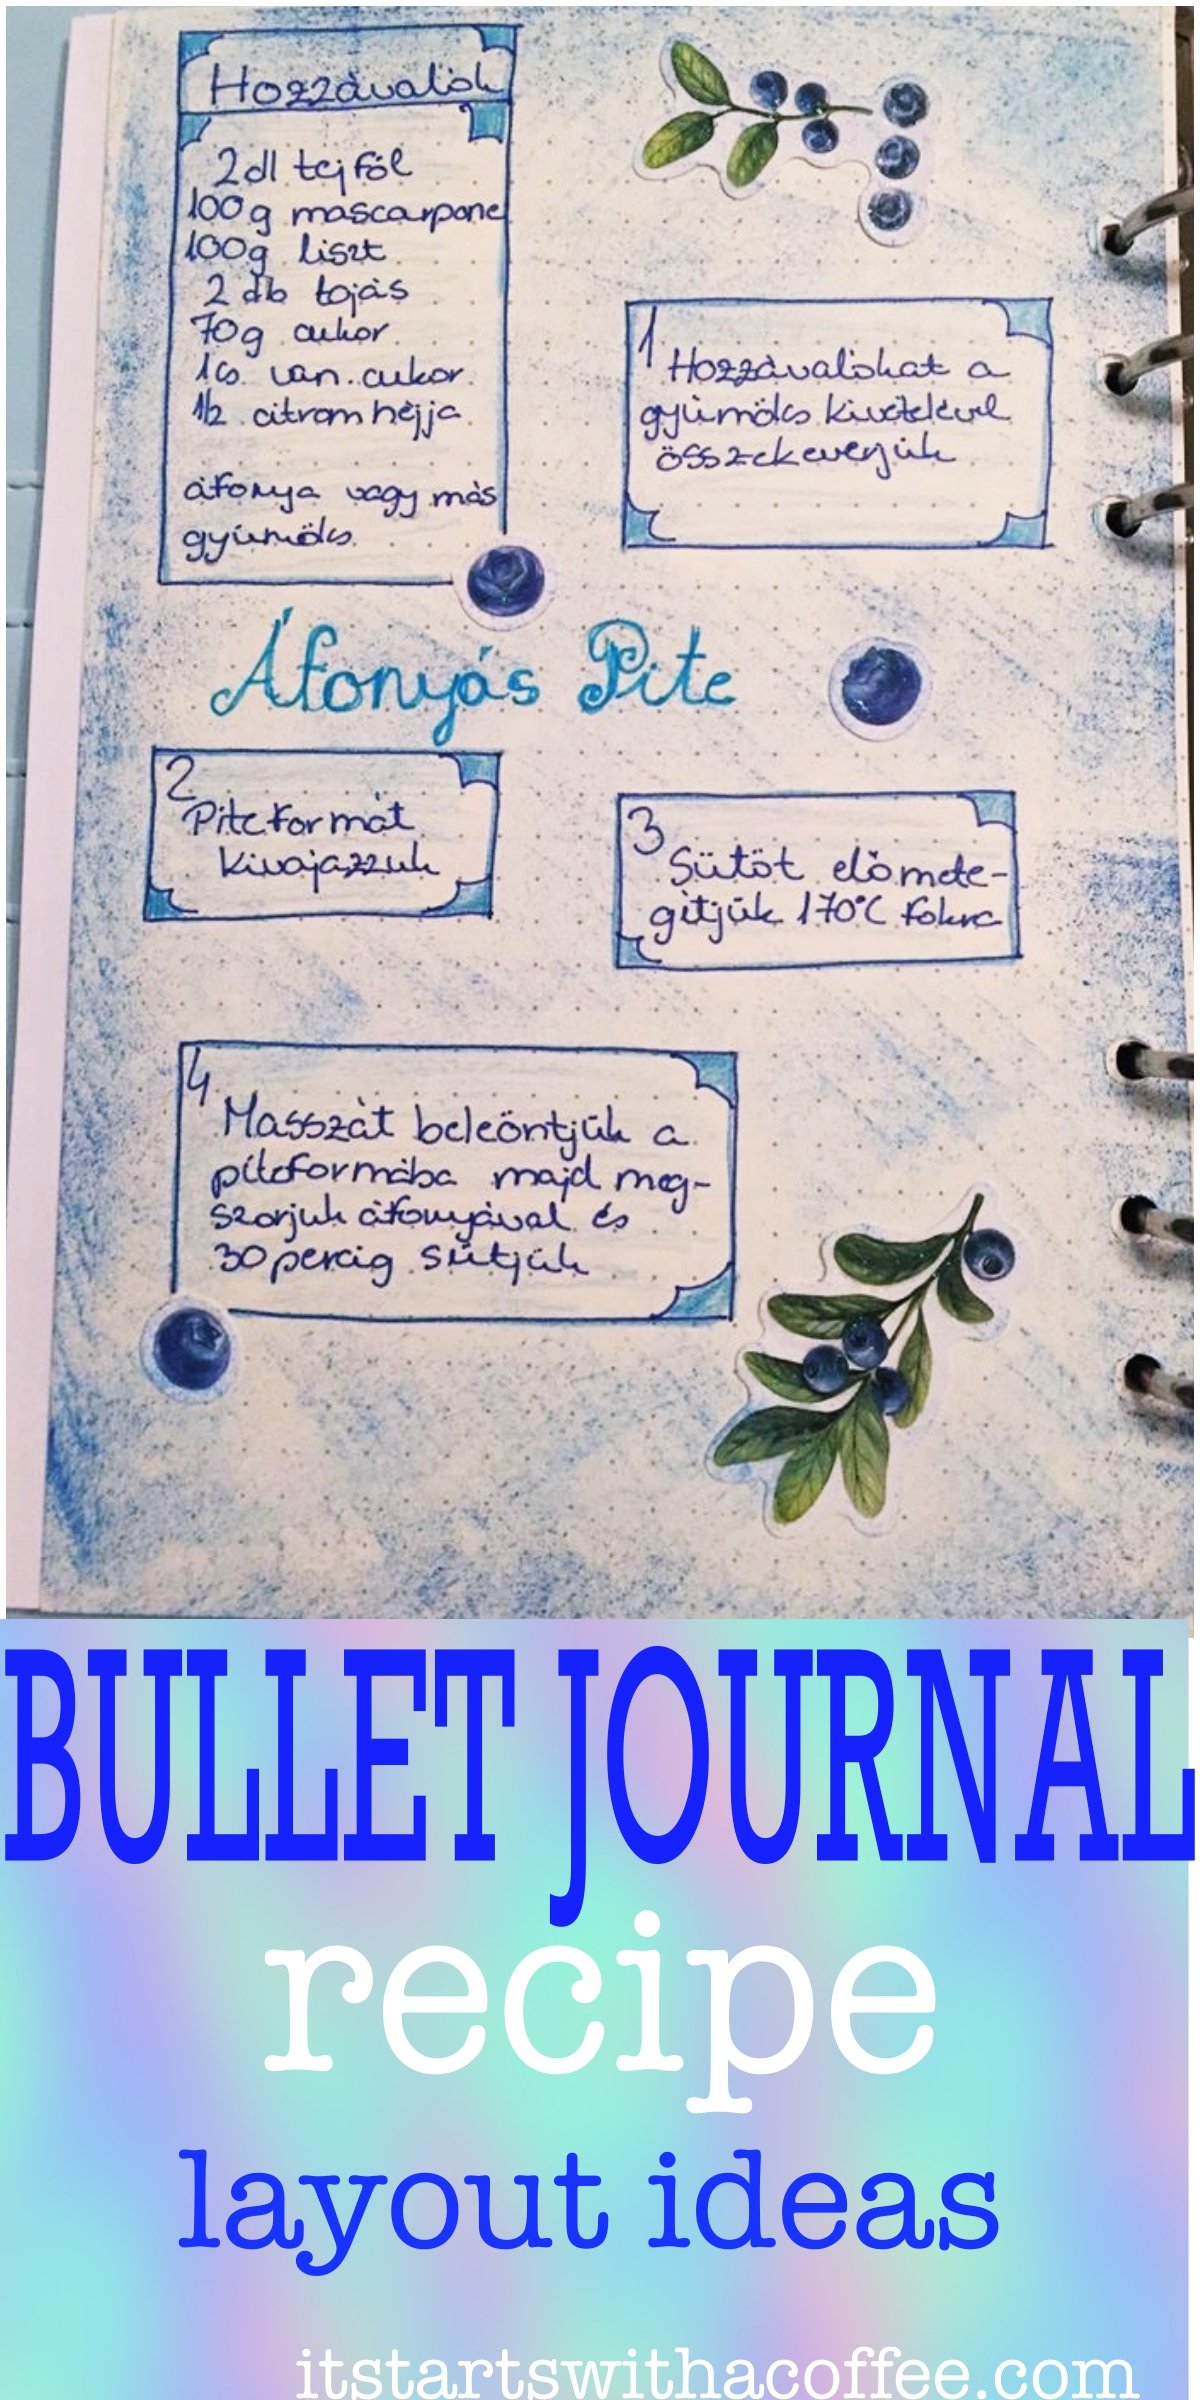 Creative journaling - recipe - itstartswithacoffee.com #recipe